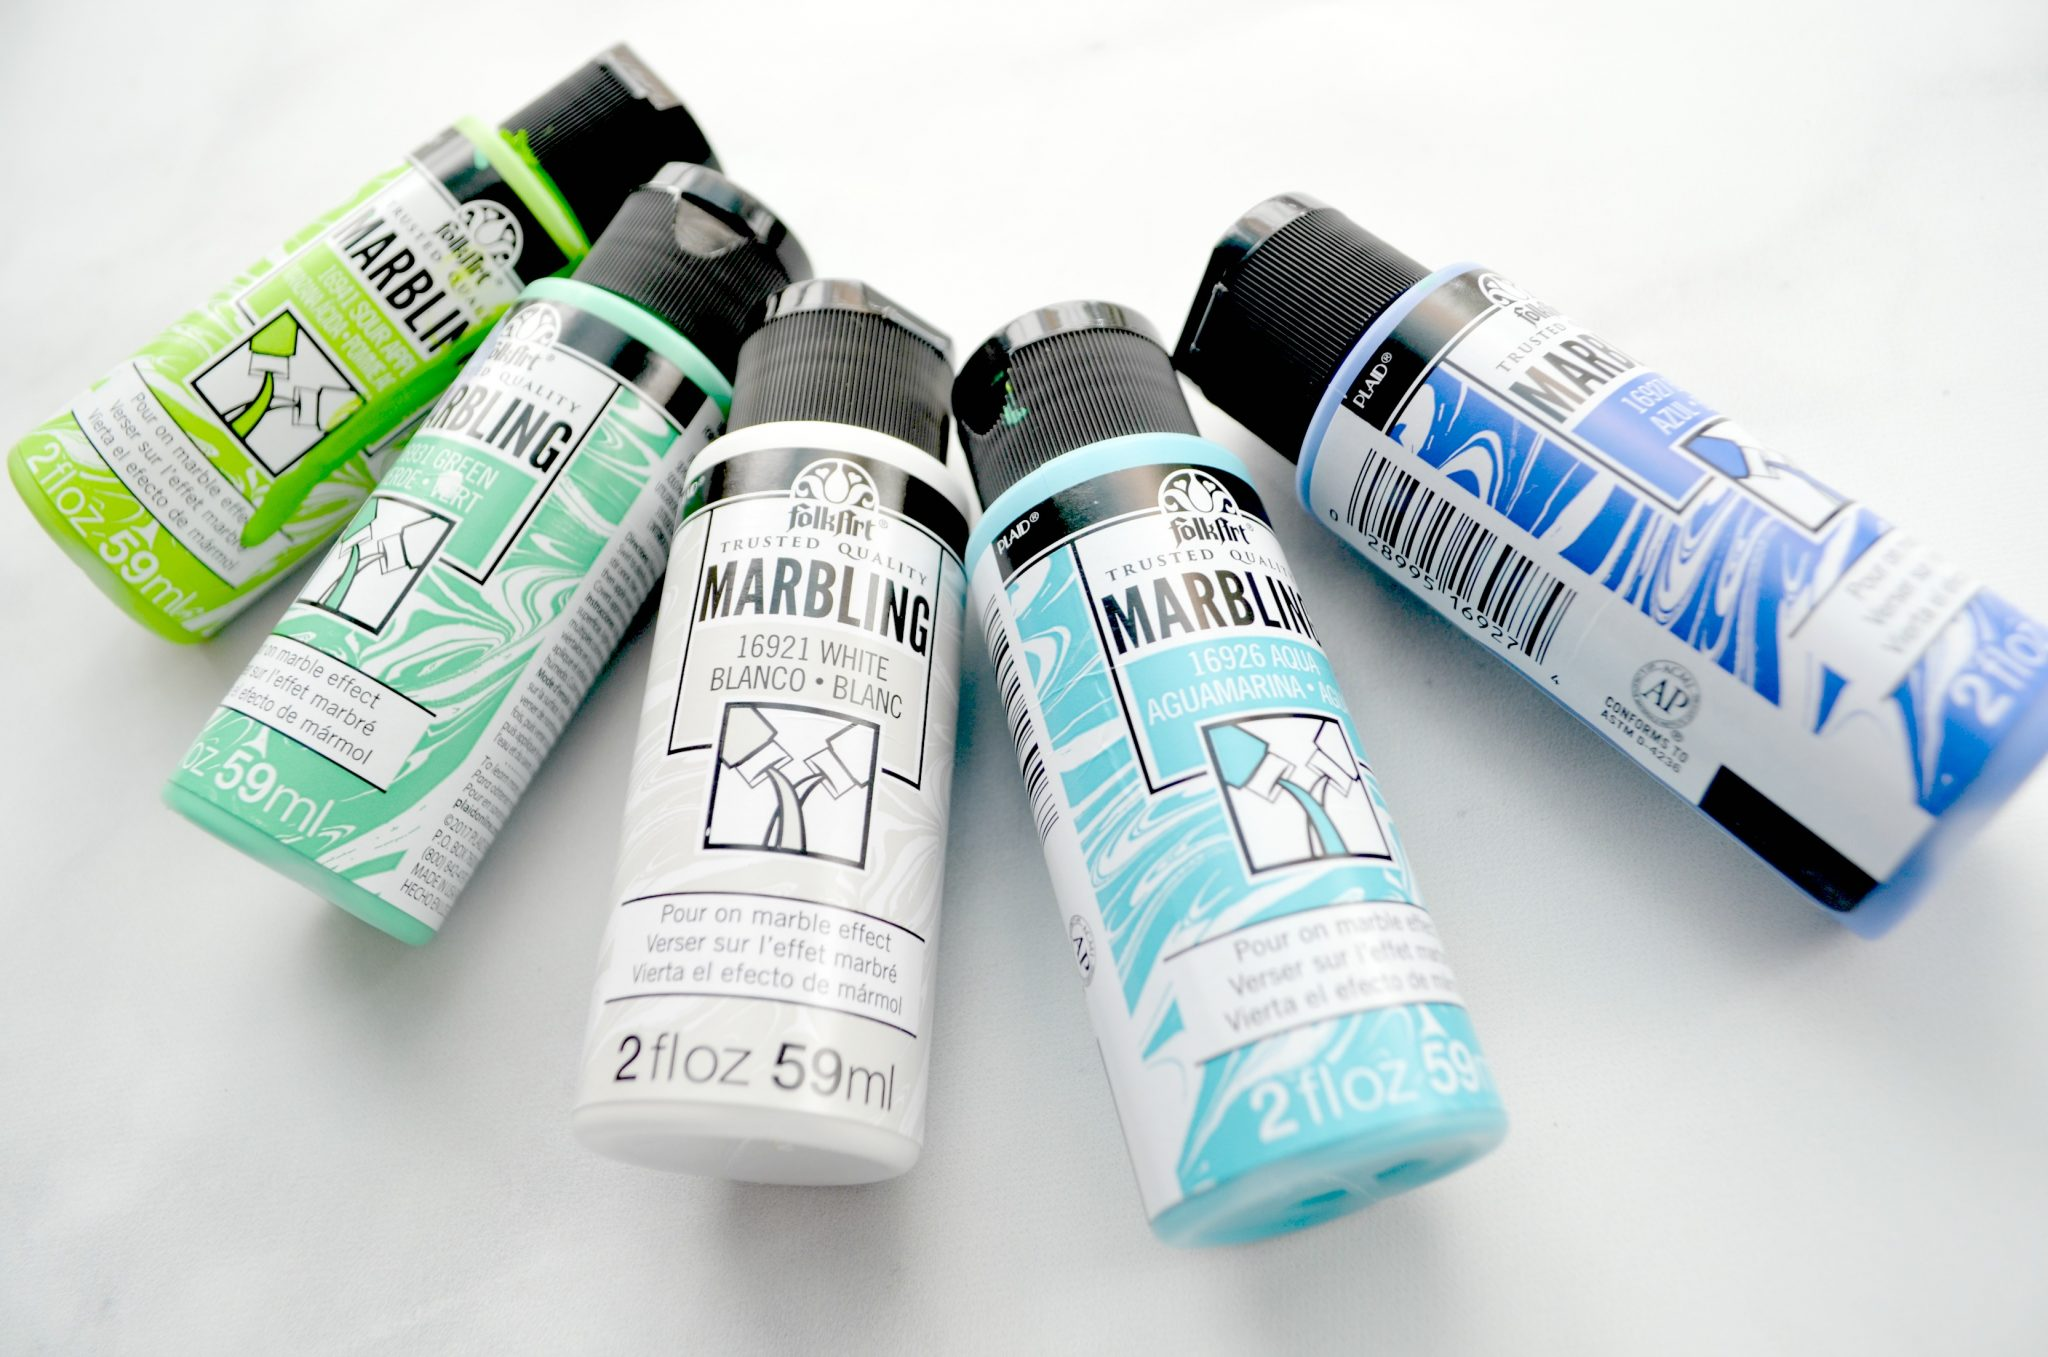 FolkArt Marbling Paints